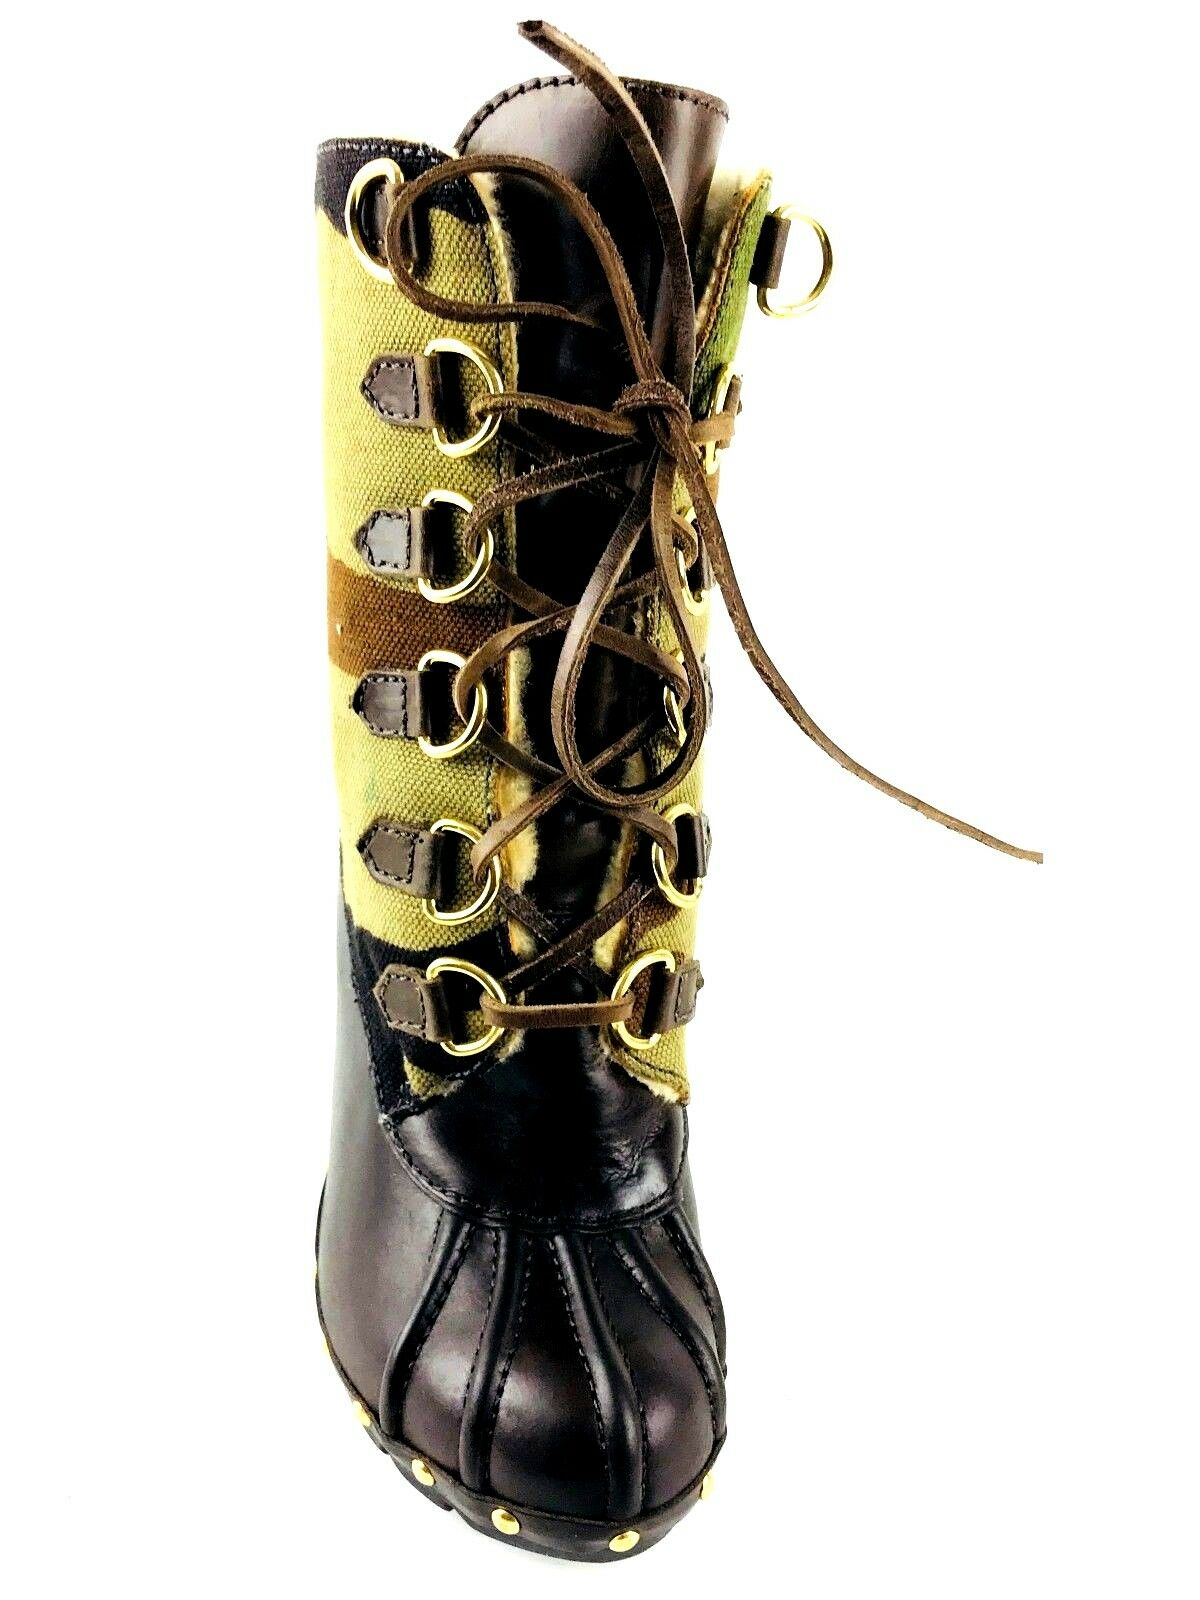 Michael Kors Studded Camouflage and leather Boot Size US.6 UK.4 EU.37